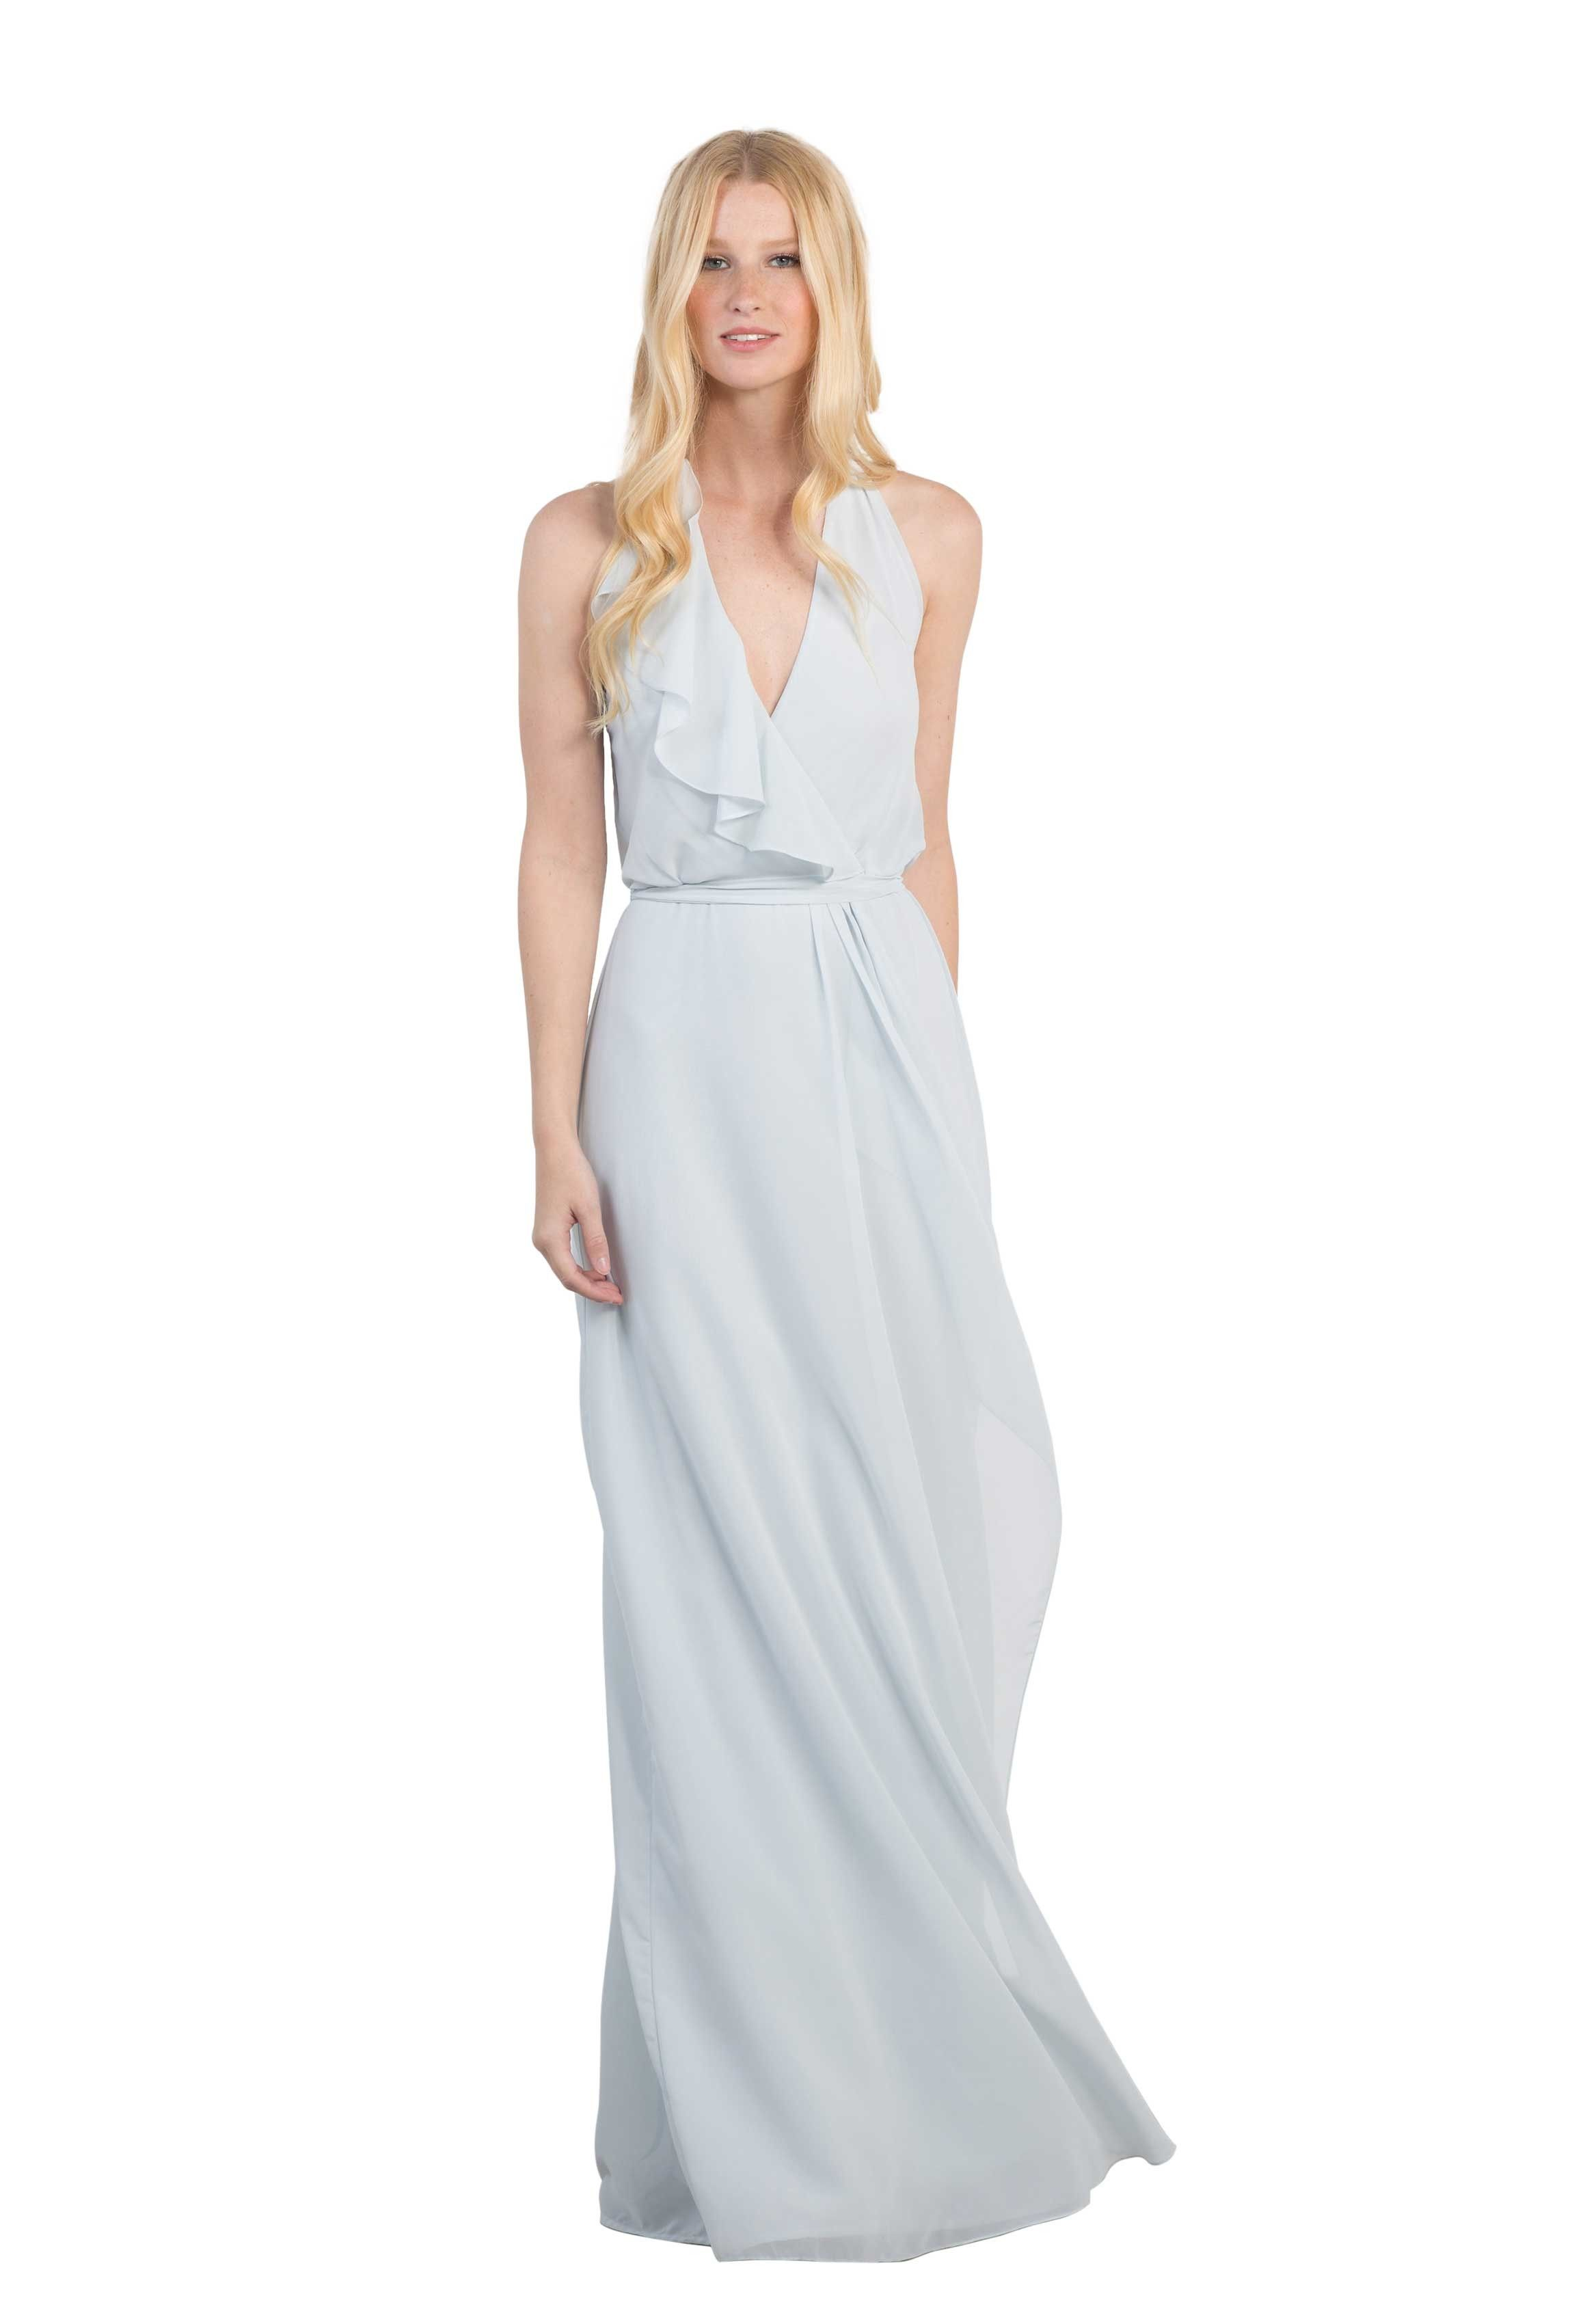 Nouvelle amsale erica to be chiffon and designer bridesmaid dresses a floor length halter chiffon bridesmaid dress in two colors affordable designer bridesmaid ombrellifo Gallery